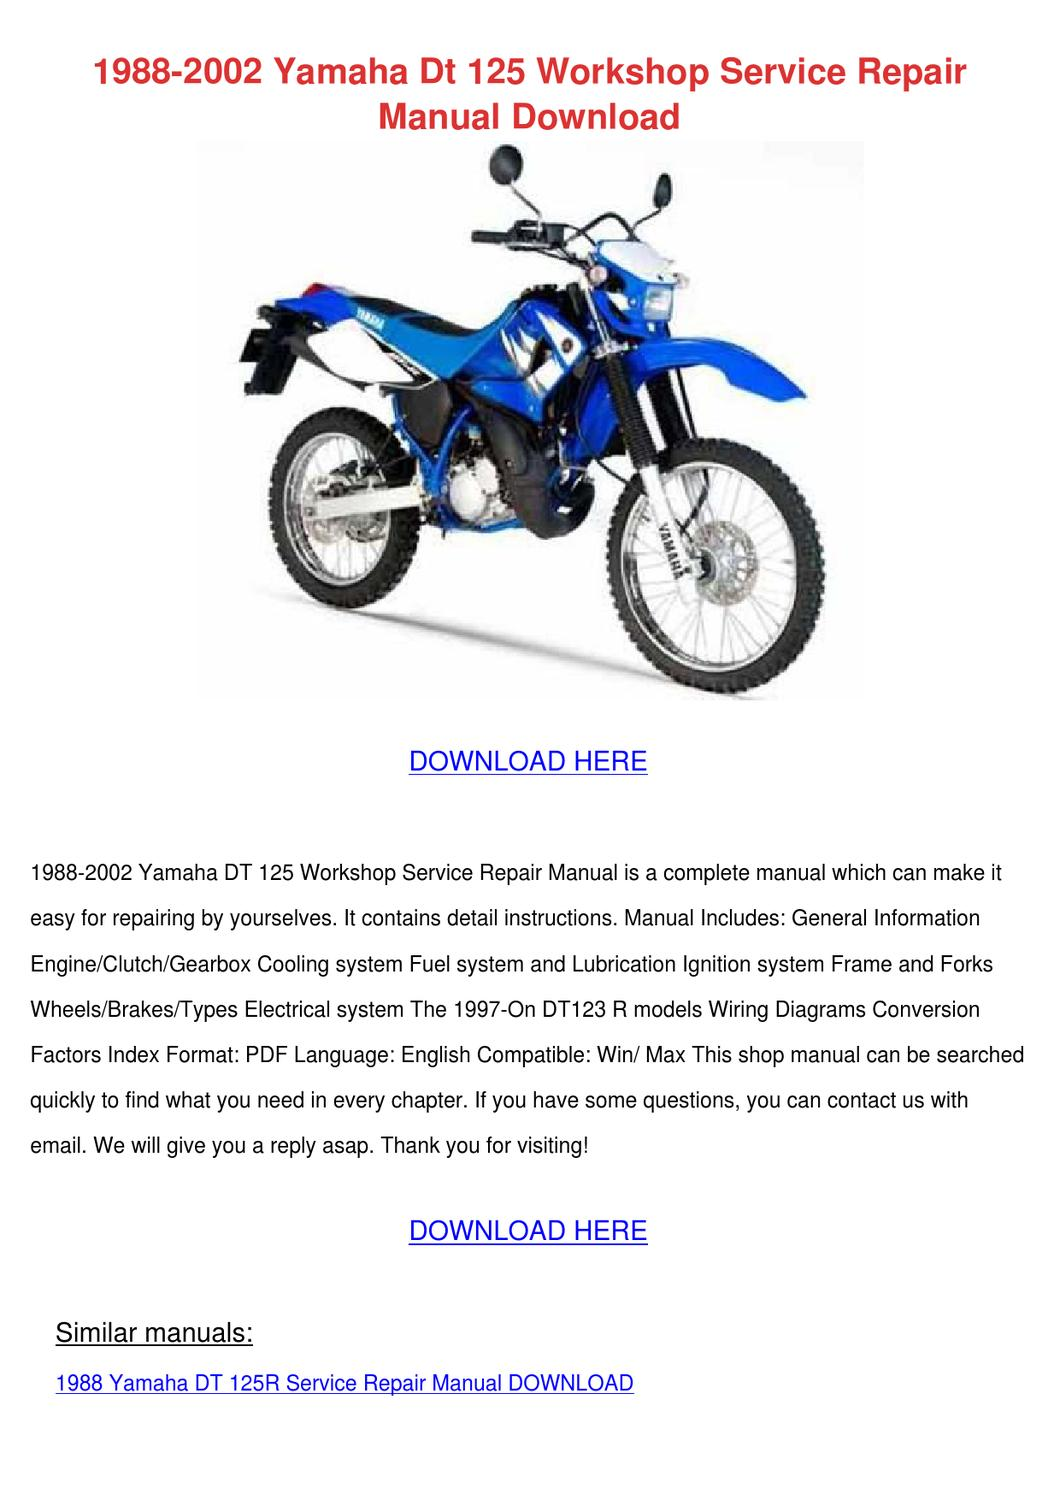 hight resolution of 1988 2002 yamaha dt 125 workshop service repa by arielleyarborough issuu